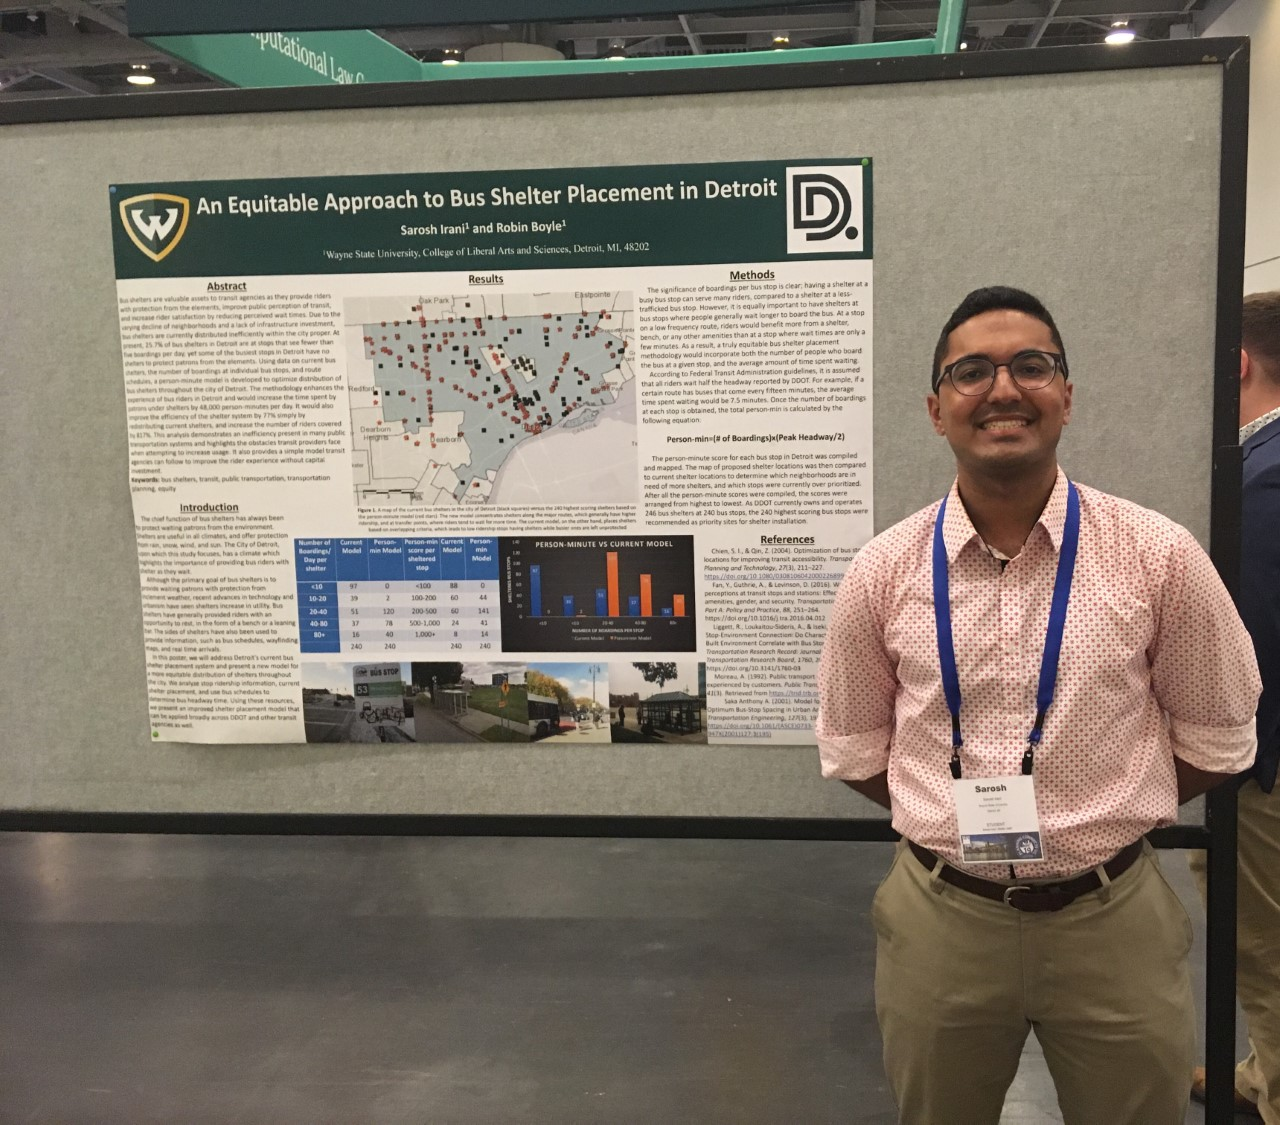 Sarosh Irani standing in front of gray display stand smiling with his research poster next to him